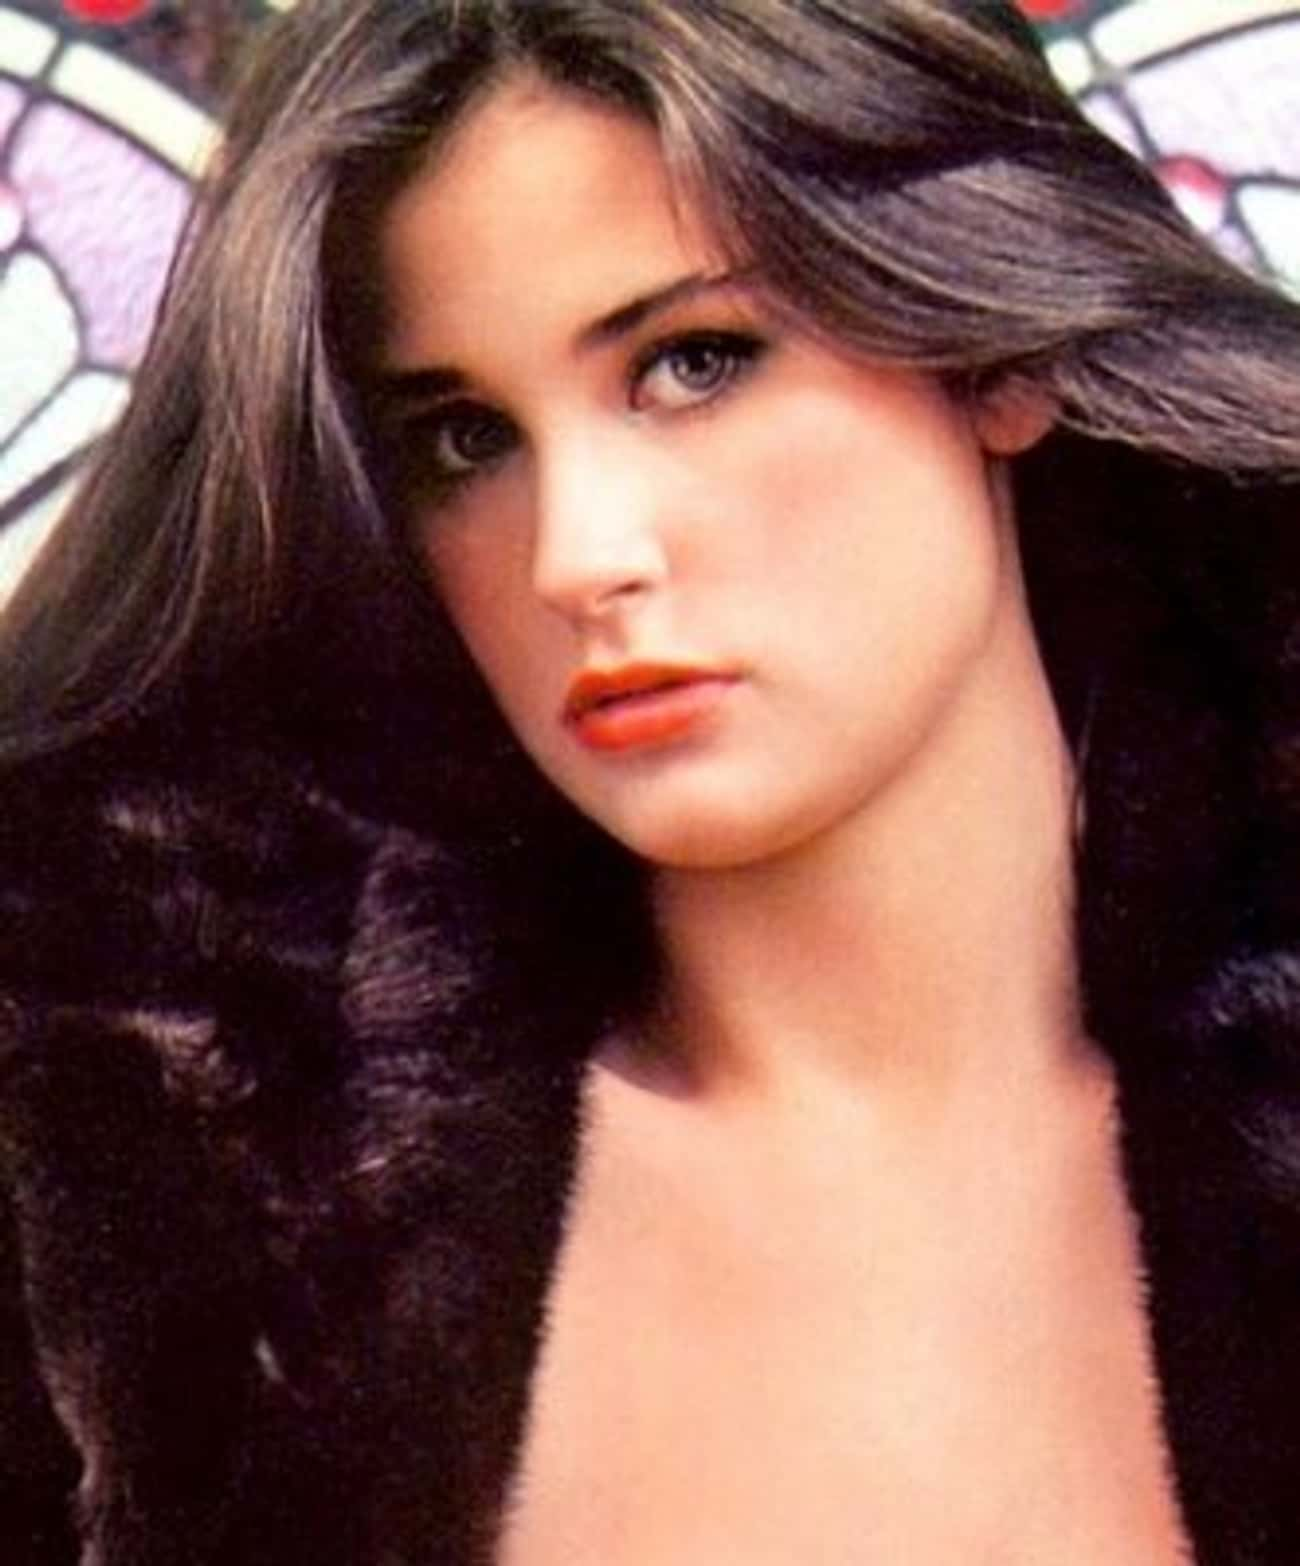 Young Demi In A Fur Coat is listed (or ranked) 3 on the list 25 Pictures of Young Demi Moore